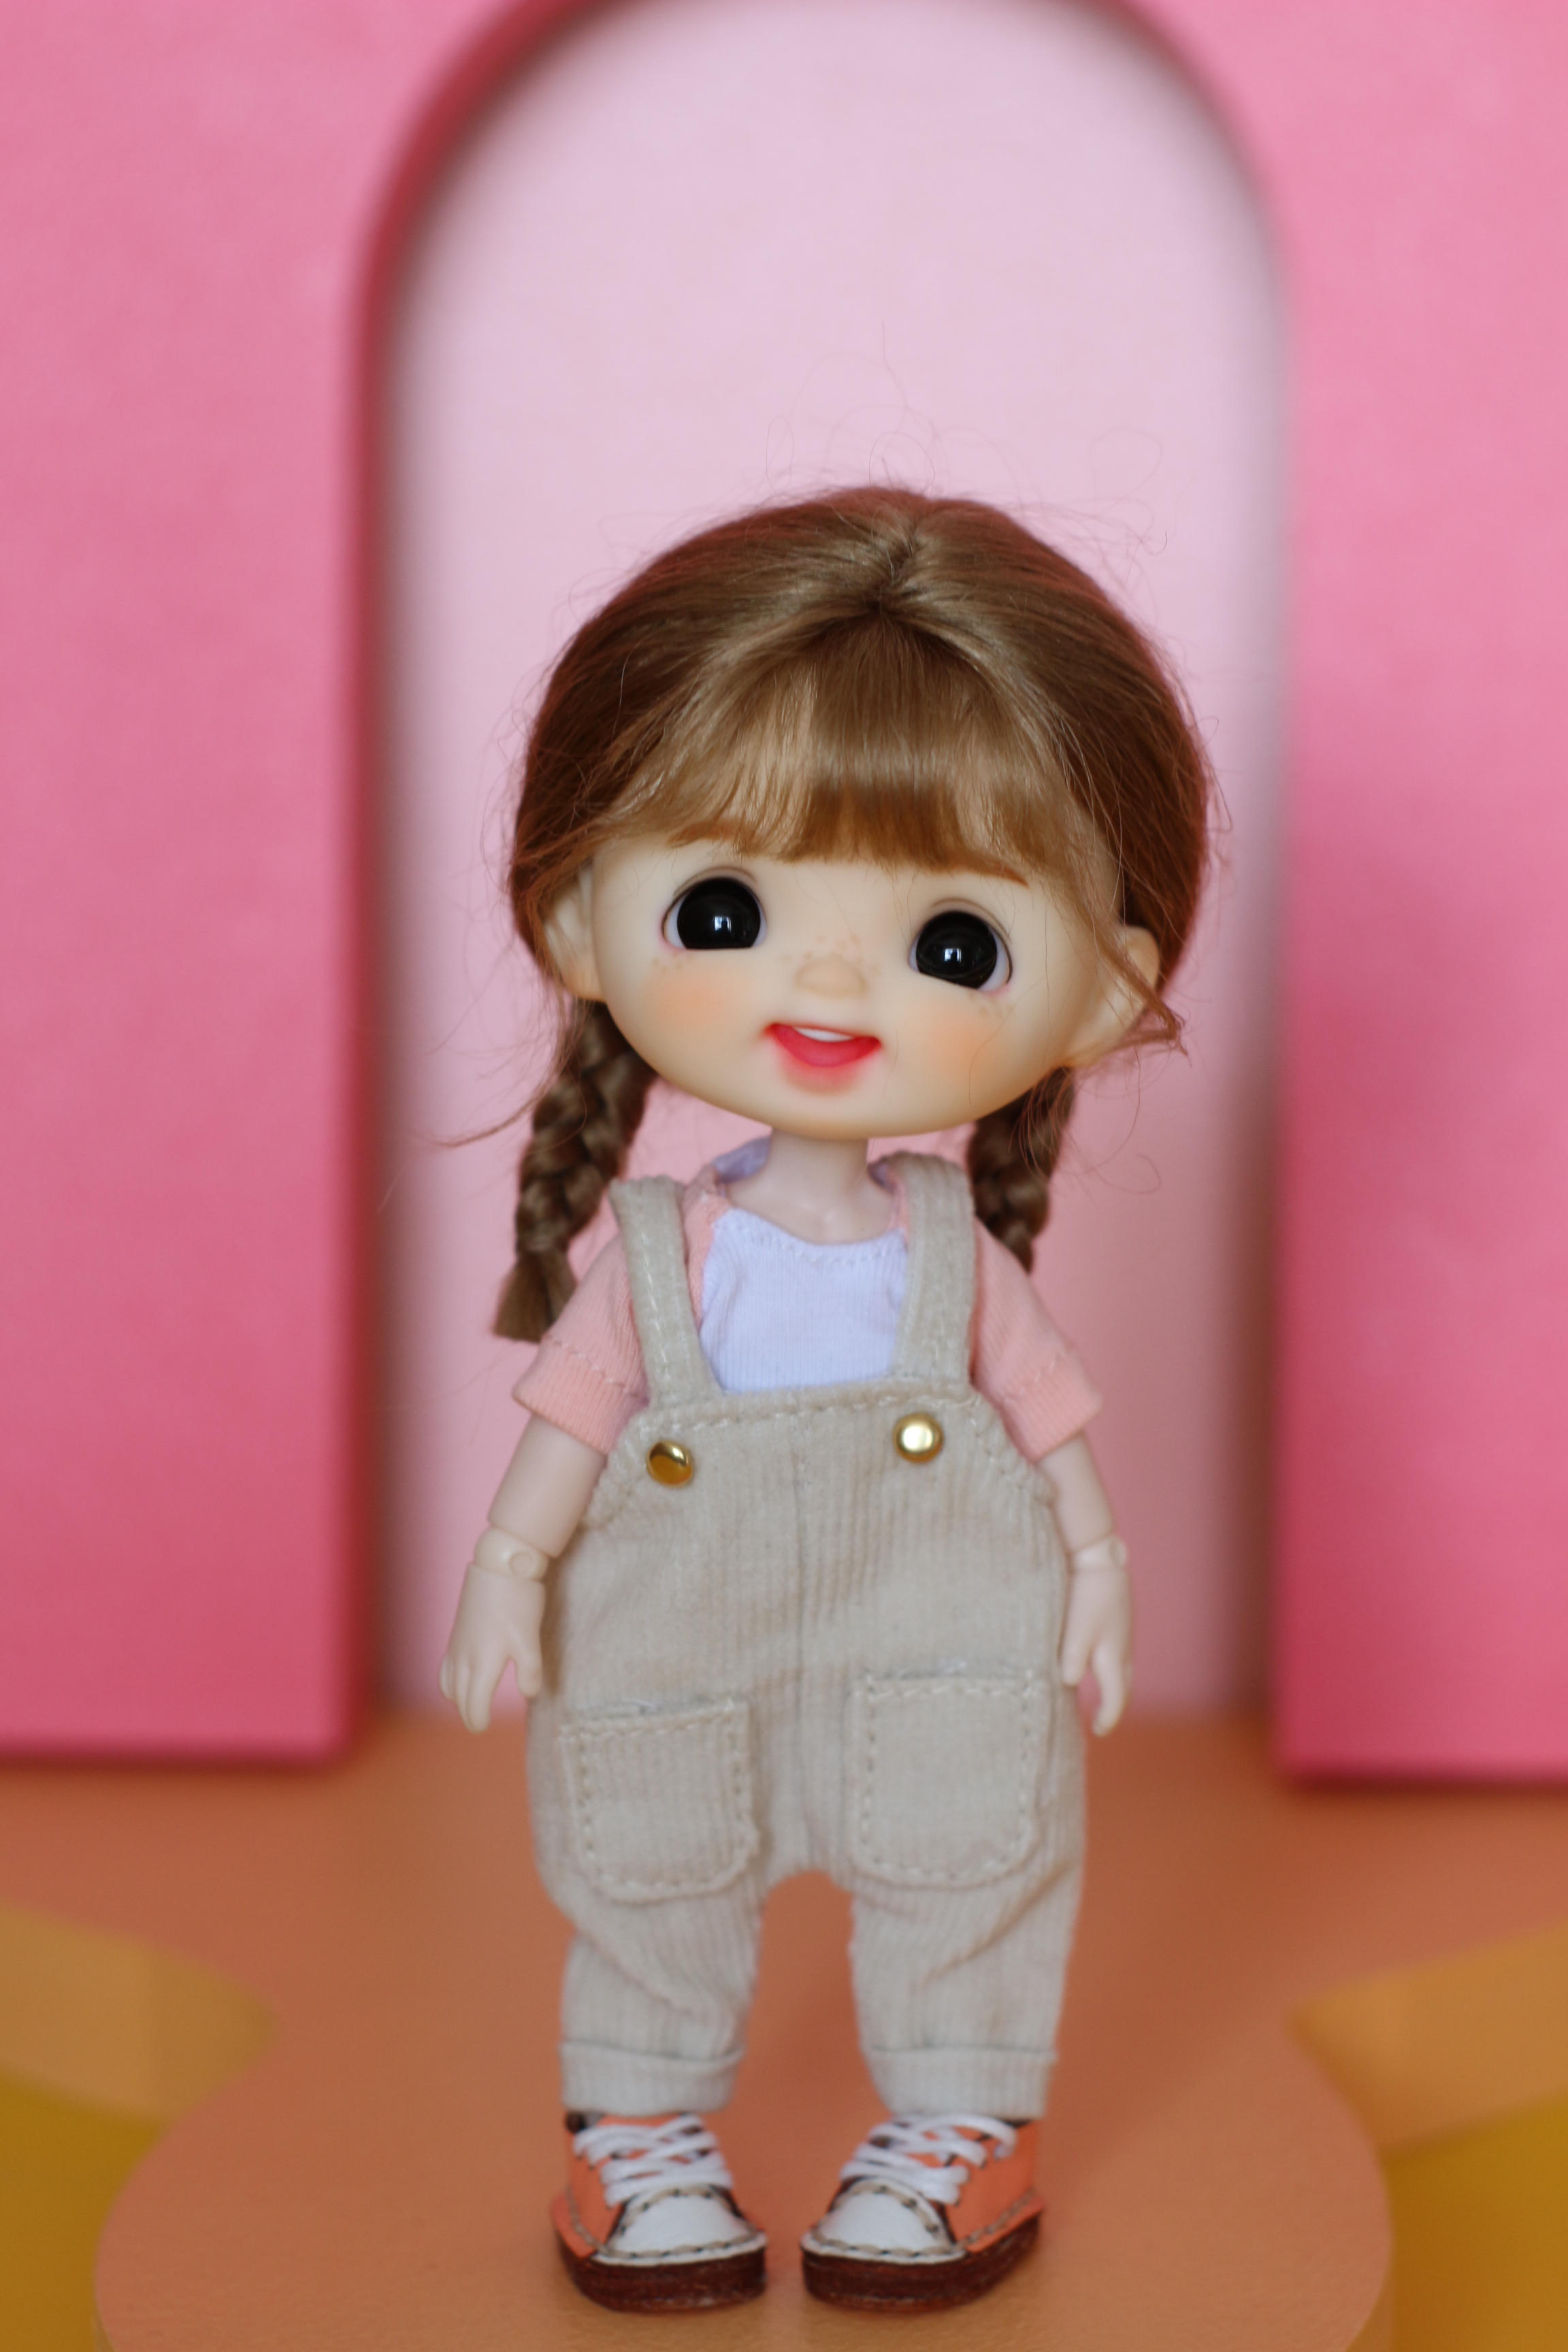 OB11 DOLL freckles smile 1/12 1/8 bjd baby head, including doll head and wig, clothes, shoes and body